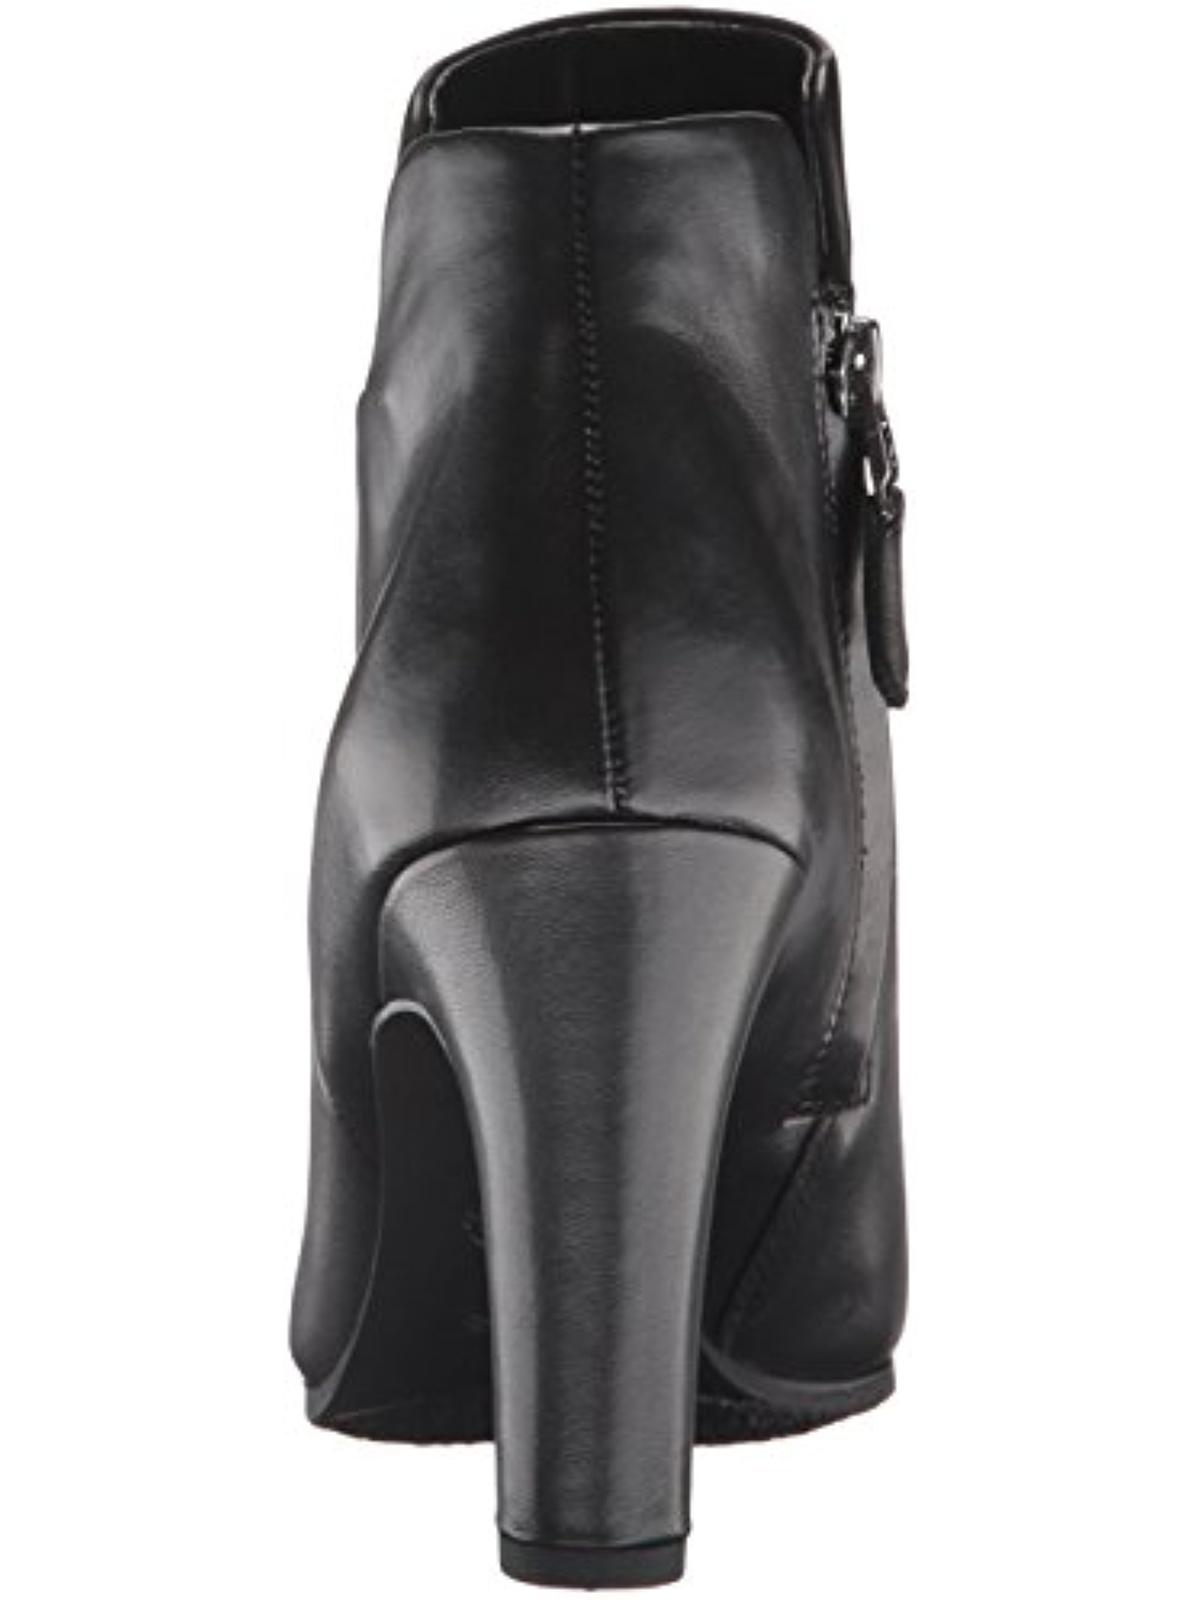 Sam Edelman Womens Shelby Leather Round Toe Ankle Boots Black 10 Medium (B,M)